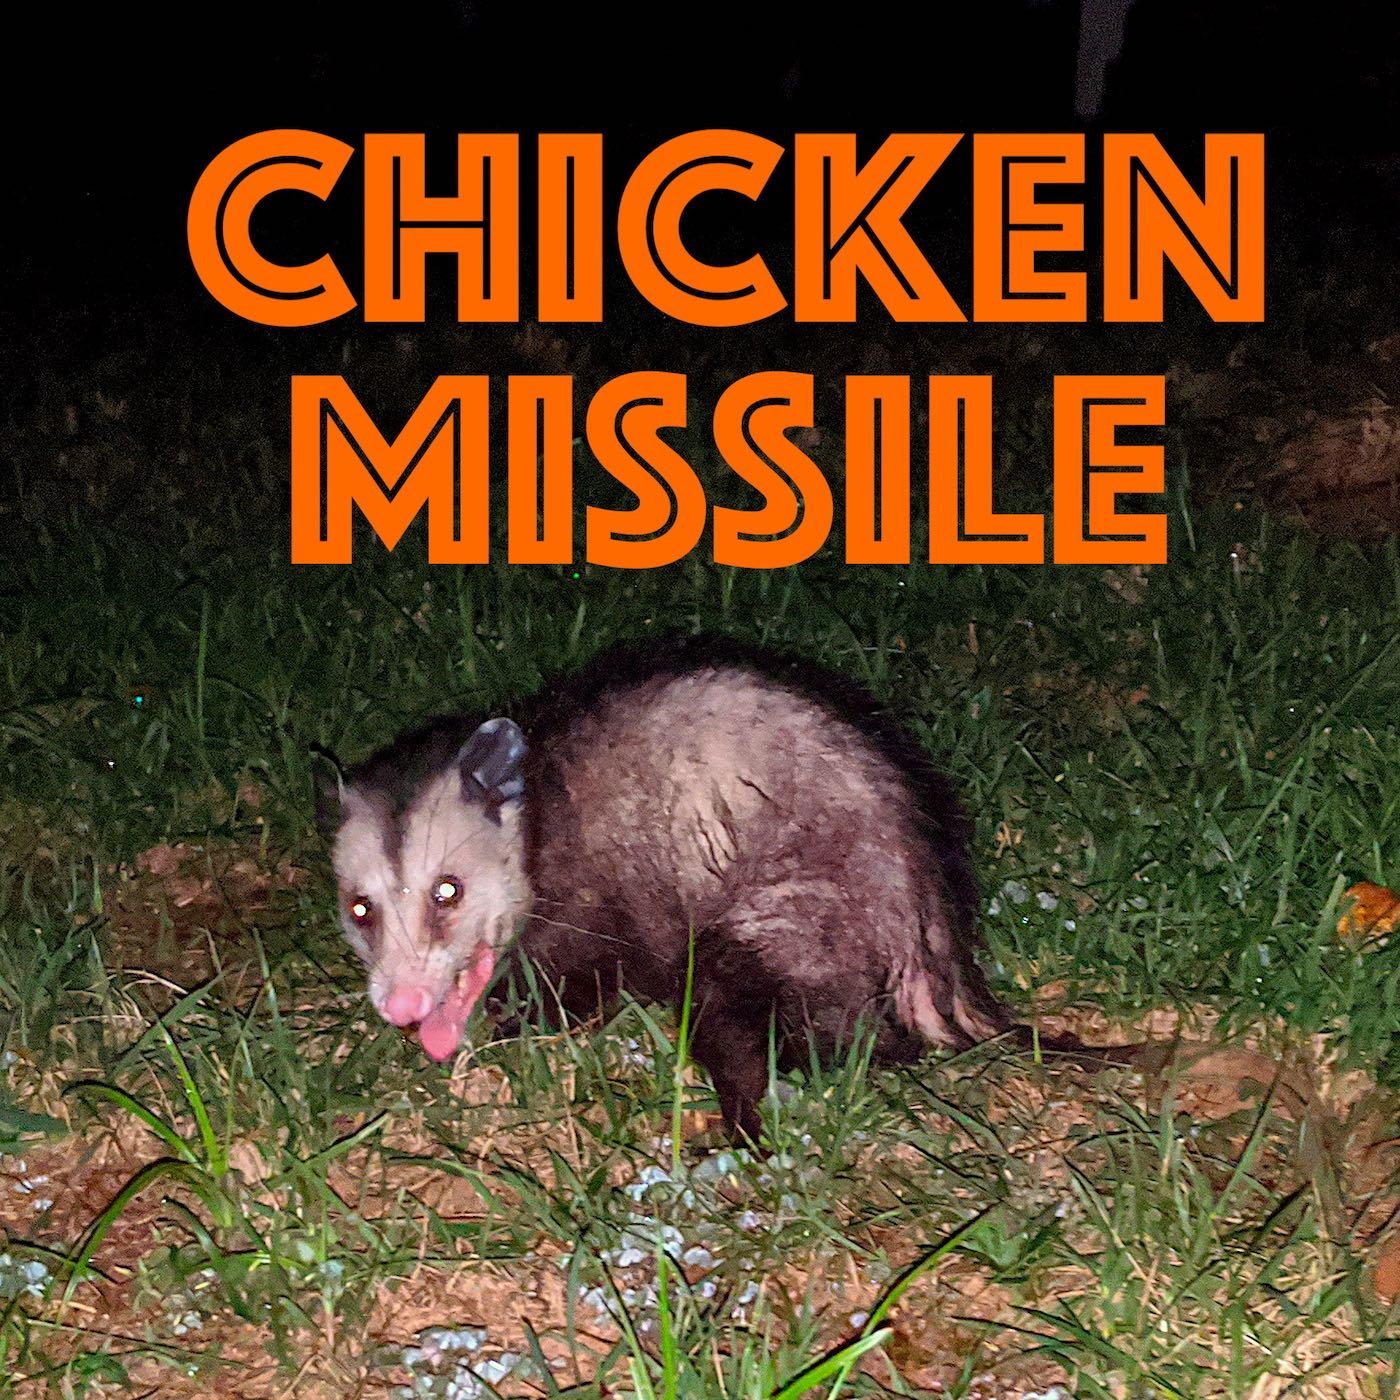 Chicken Missile